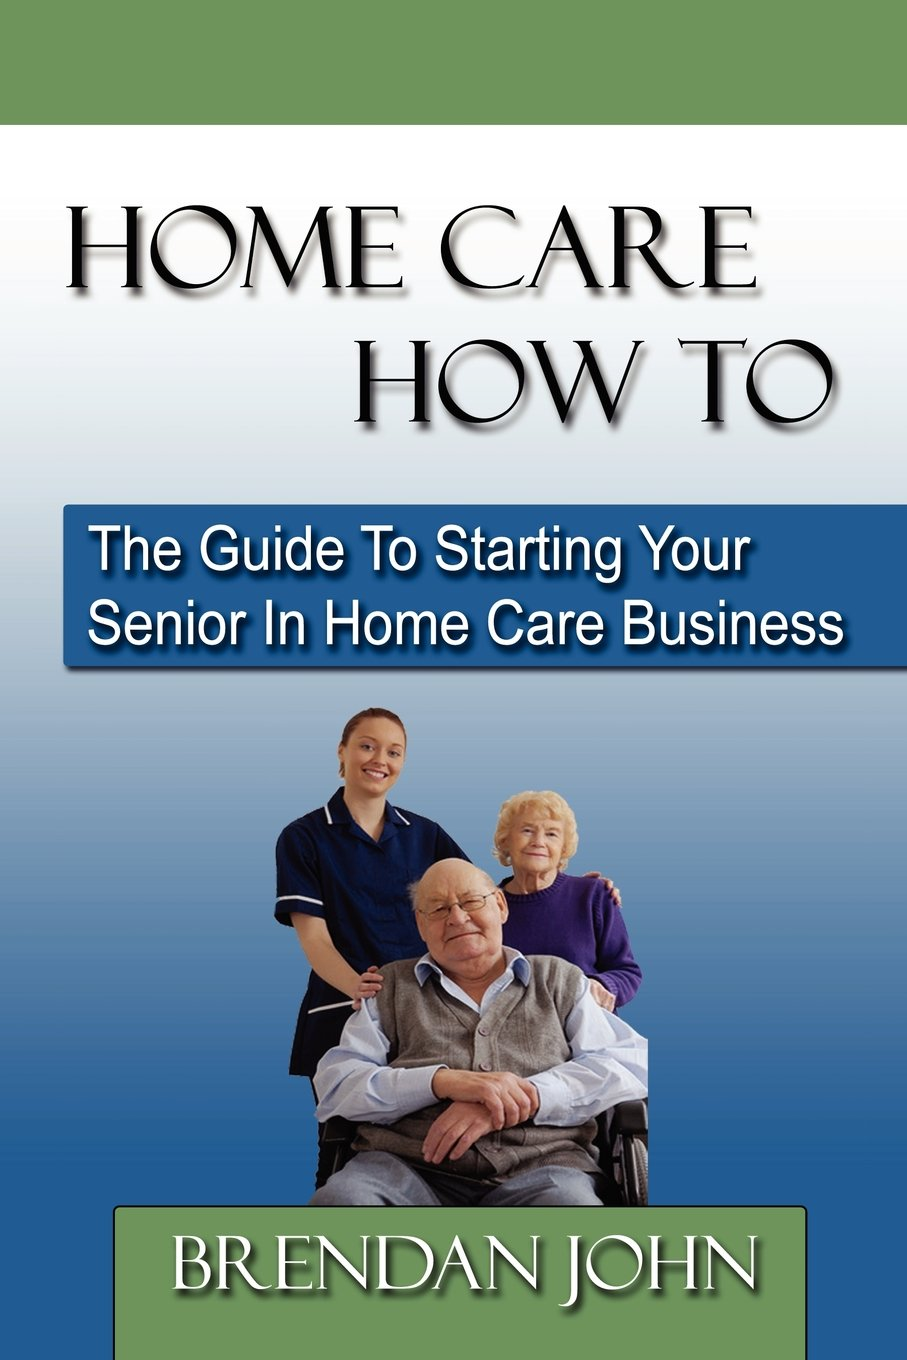 HOME CARE HOW Starting Business product image